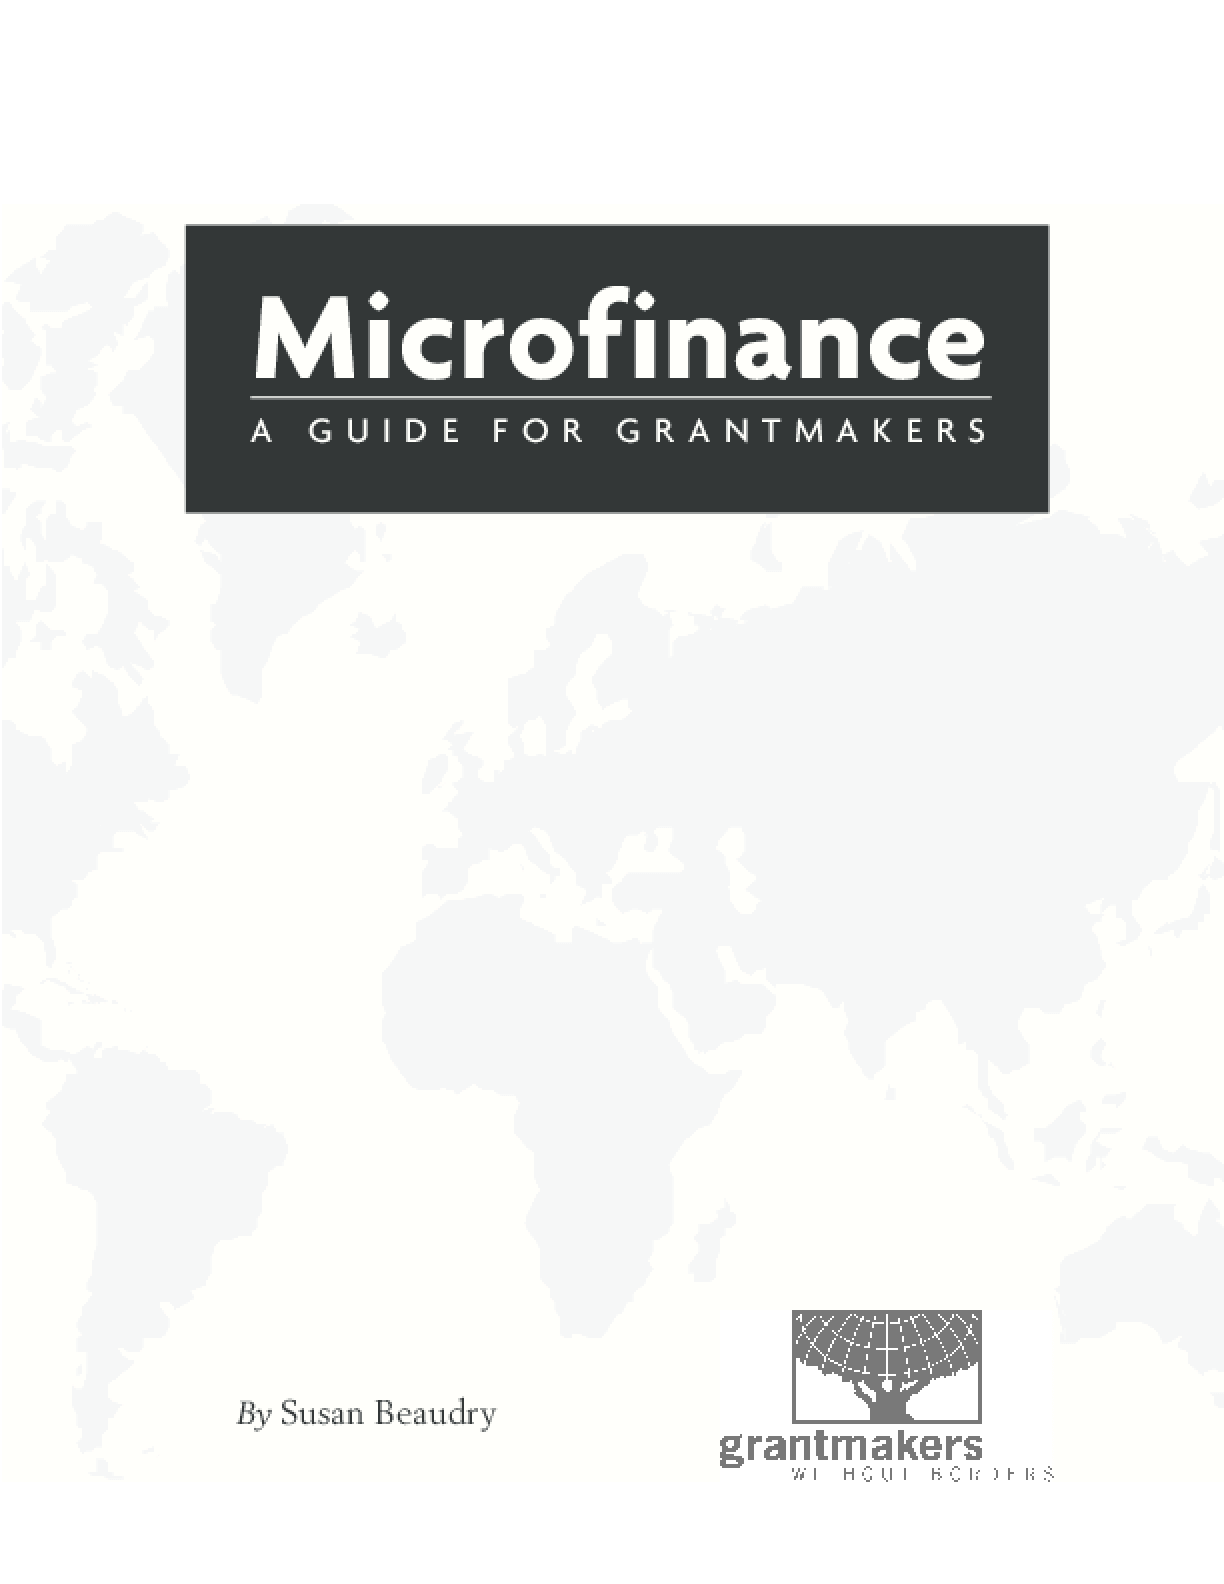 Microfinance: A Guide for Grantmakers